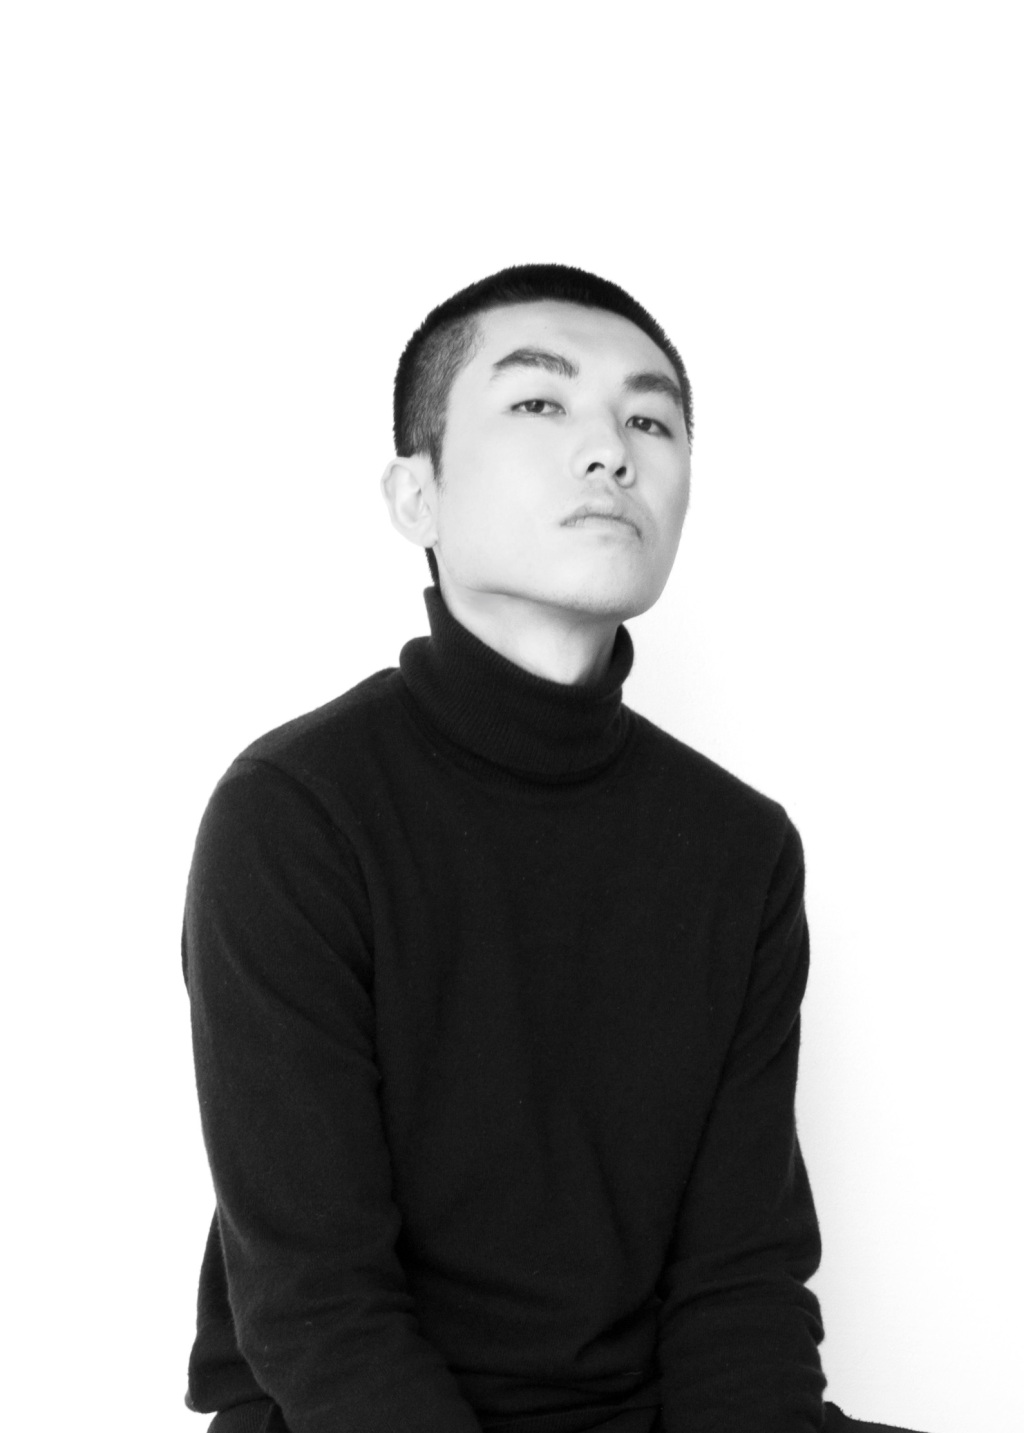 8ON8 creative director Li Gong